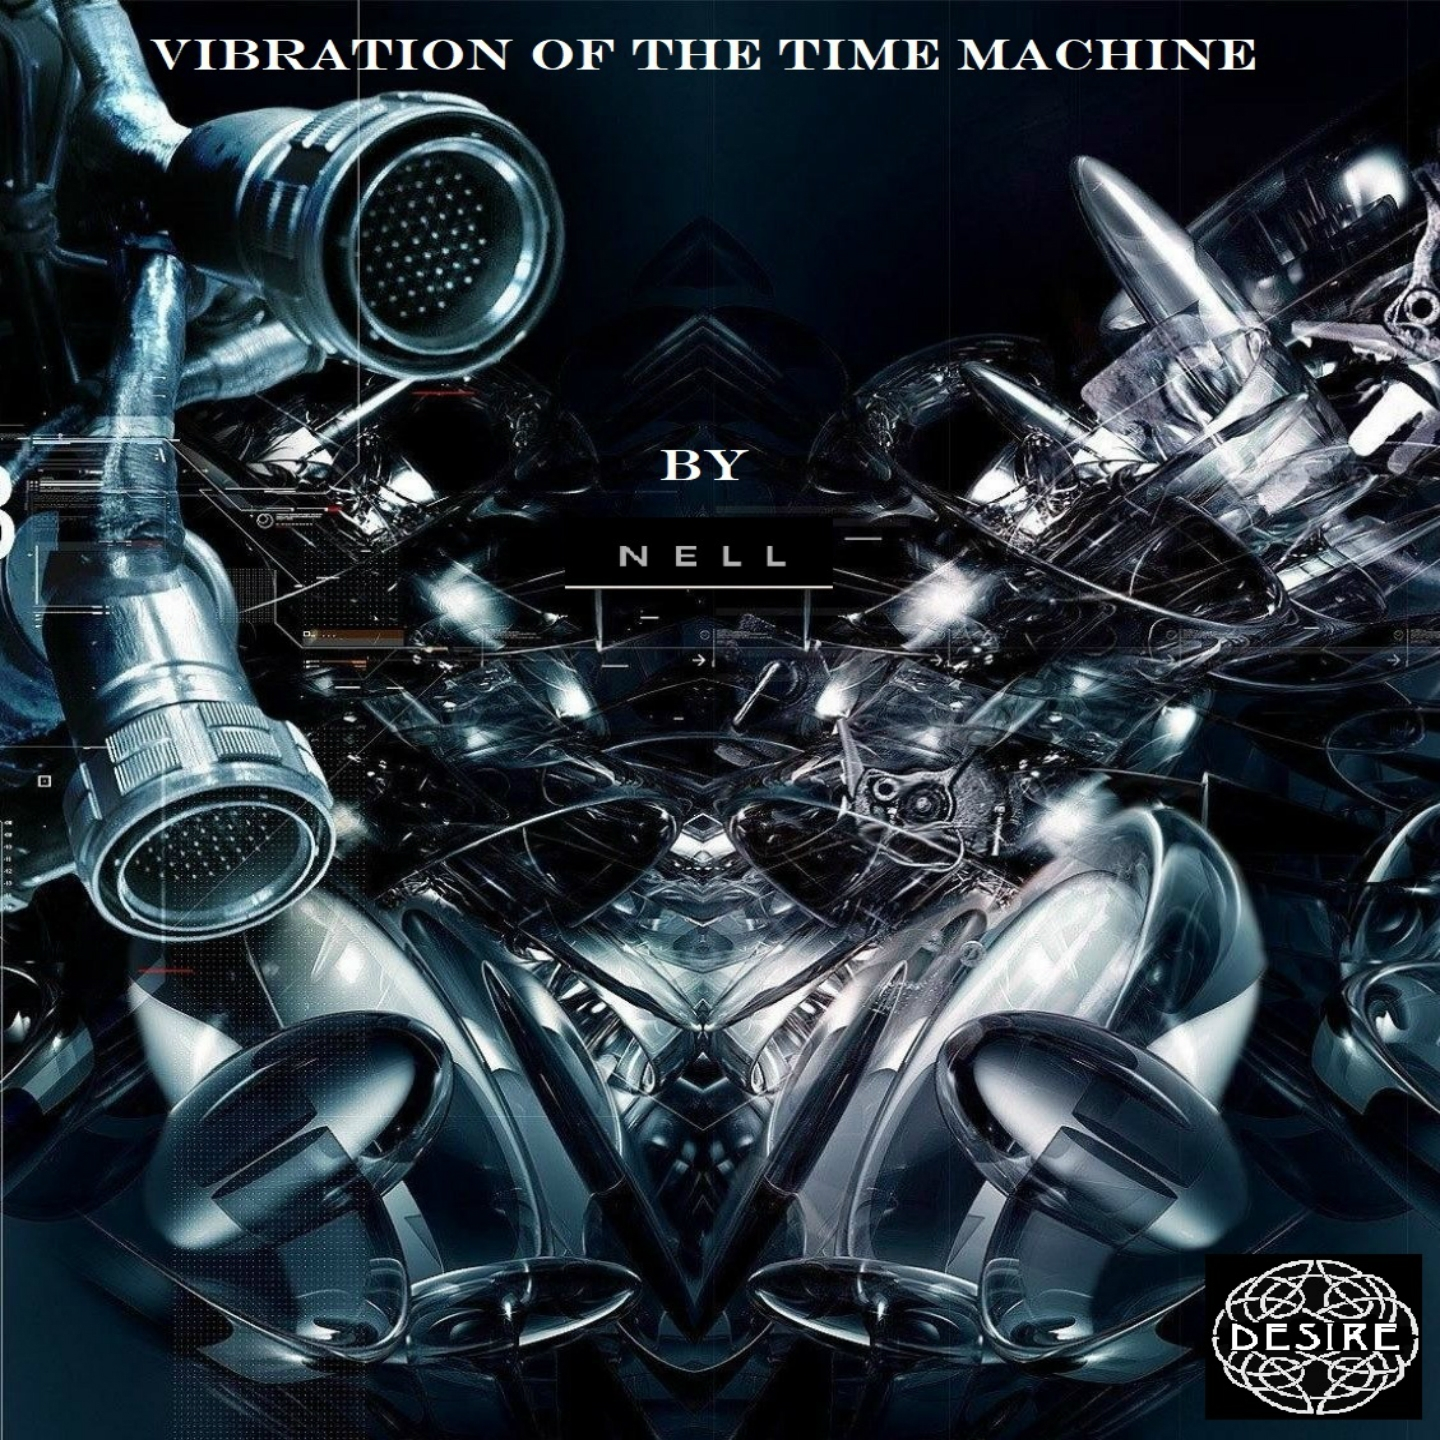 Vibration of the Time Machine